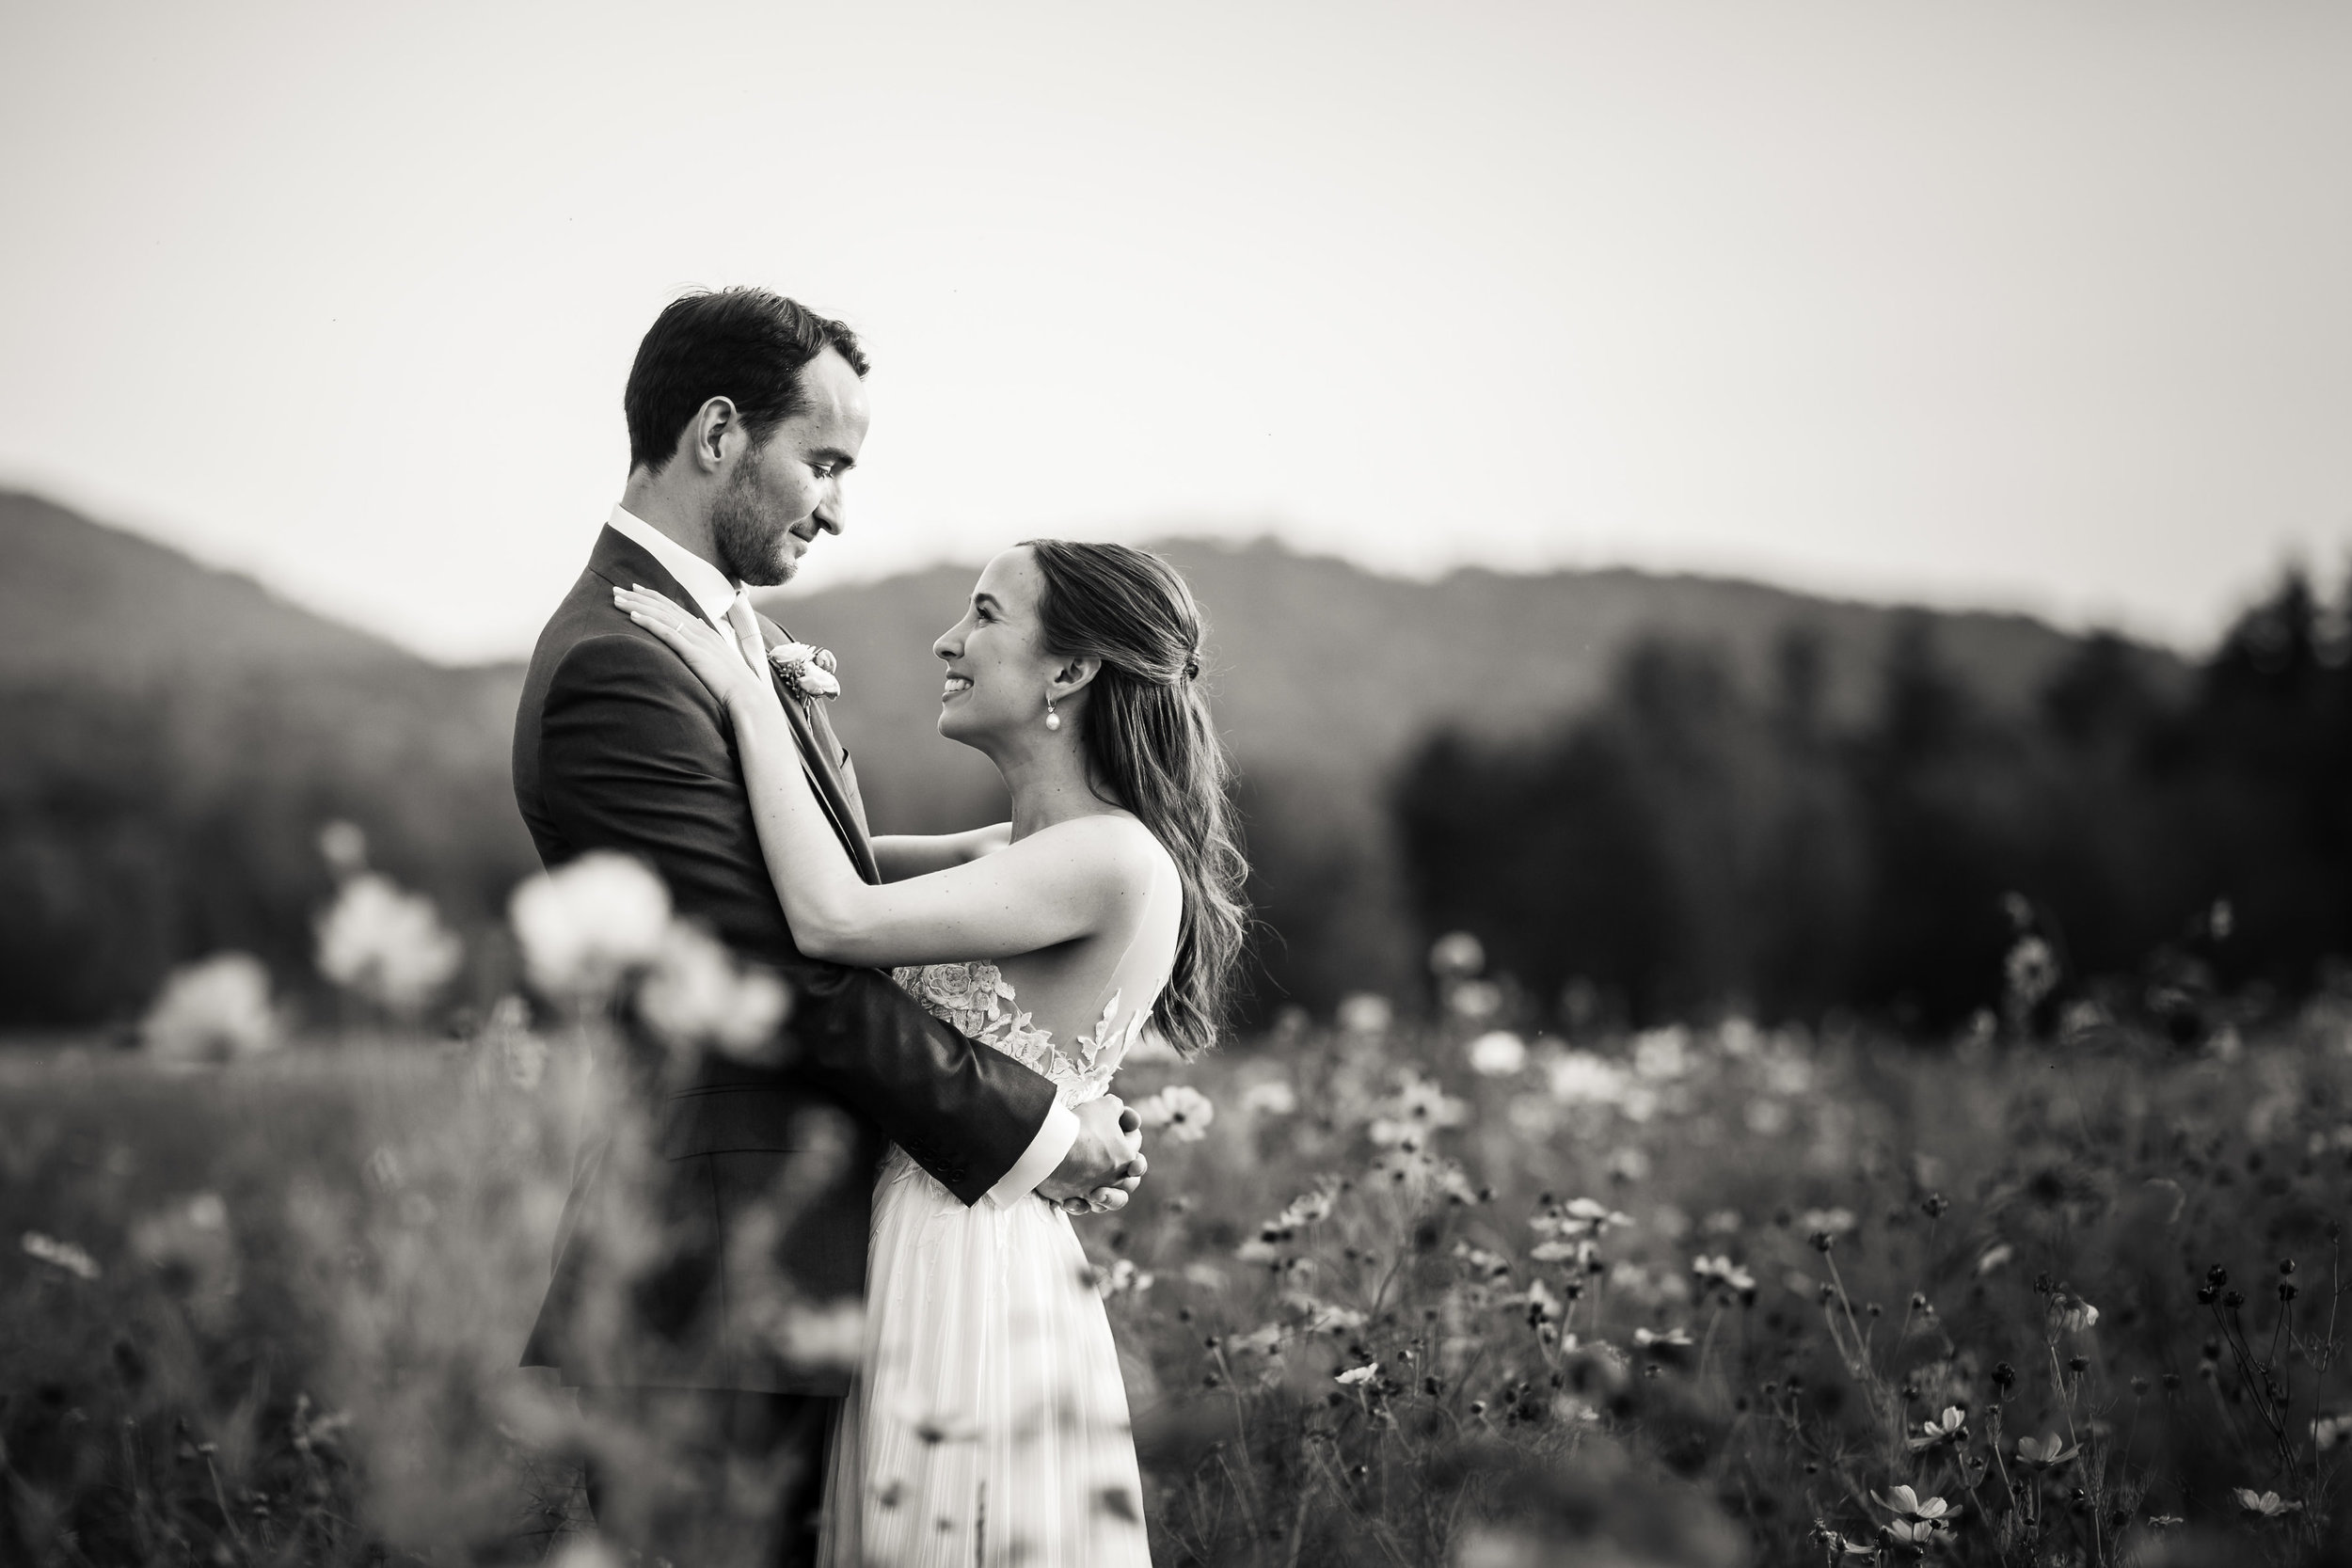 Another moment of love at The Barn and one of our elegant Stowe weddings! Image: Jag Studios